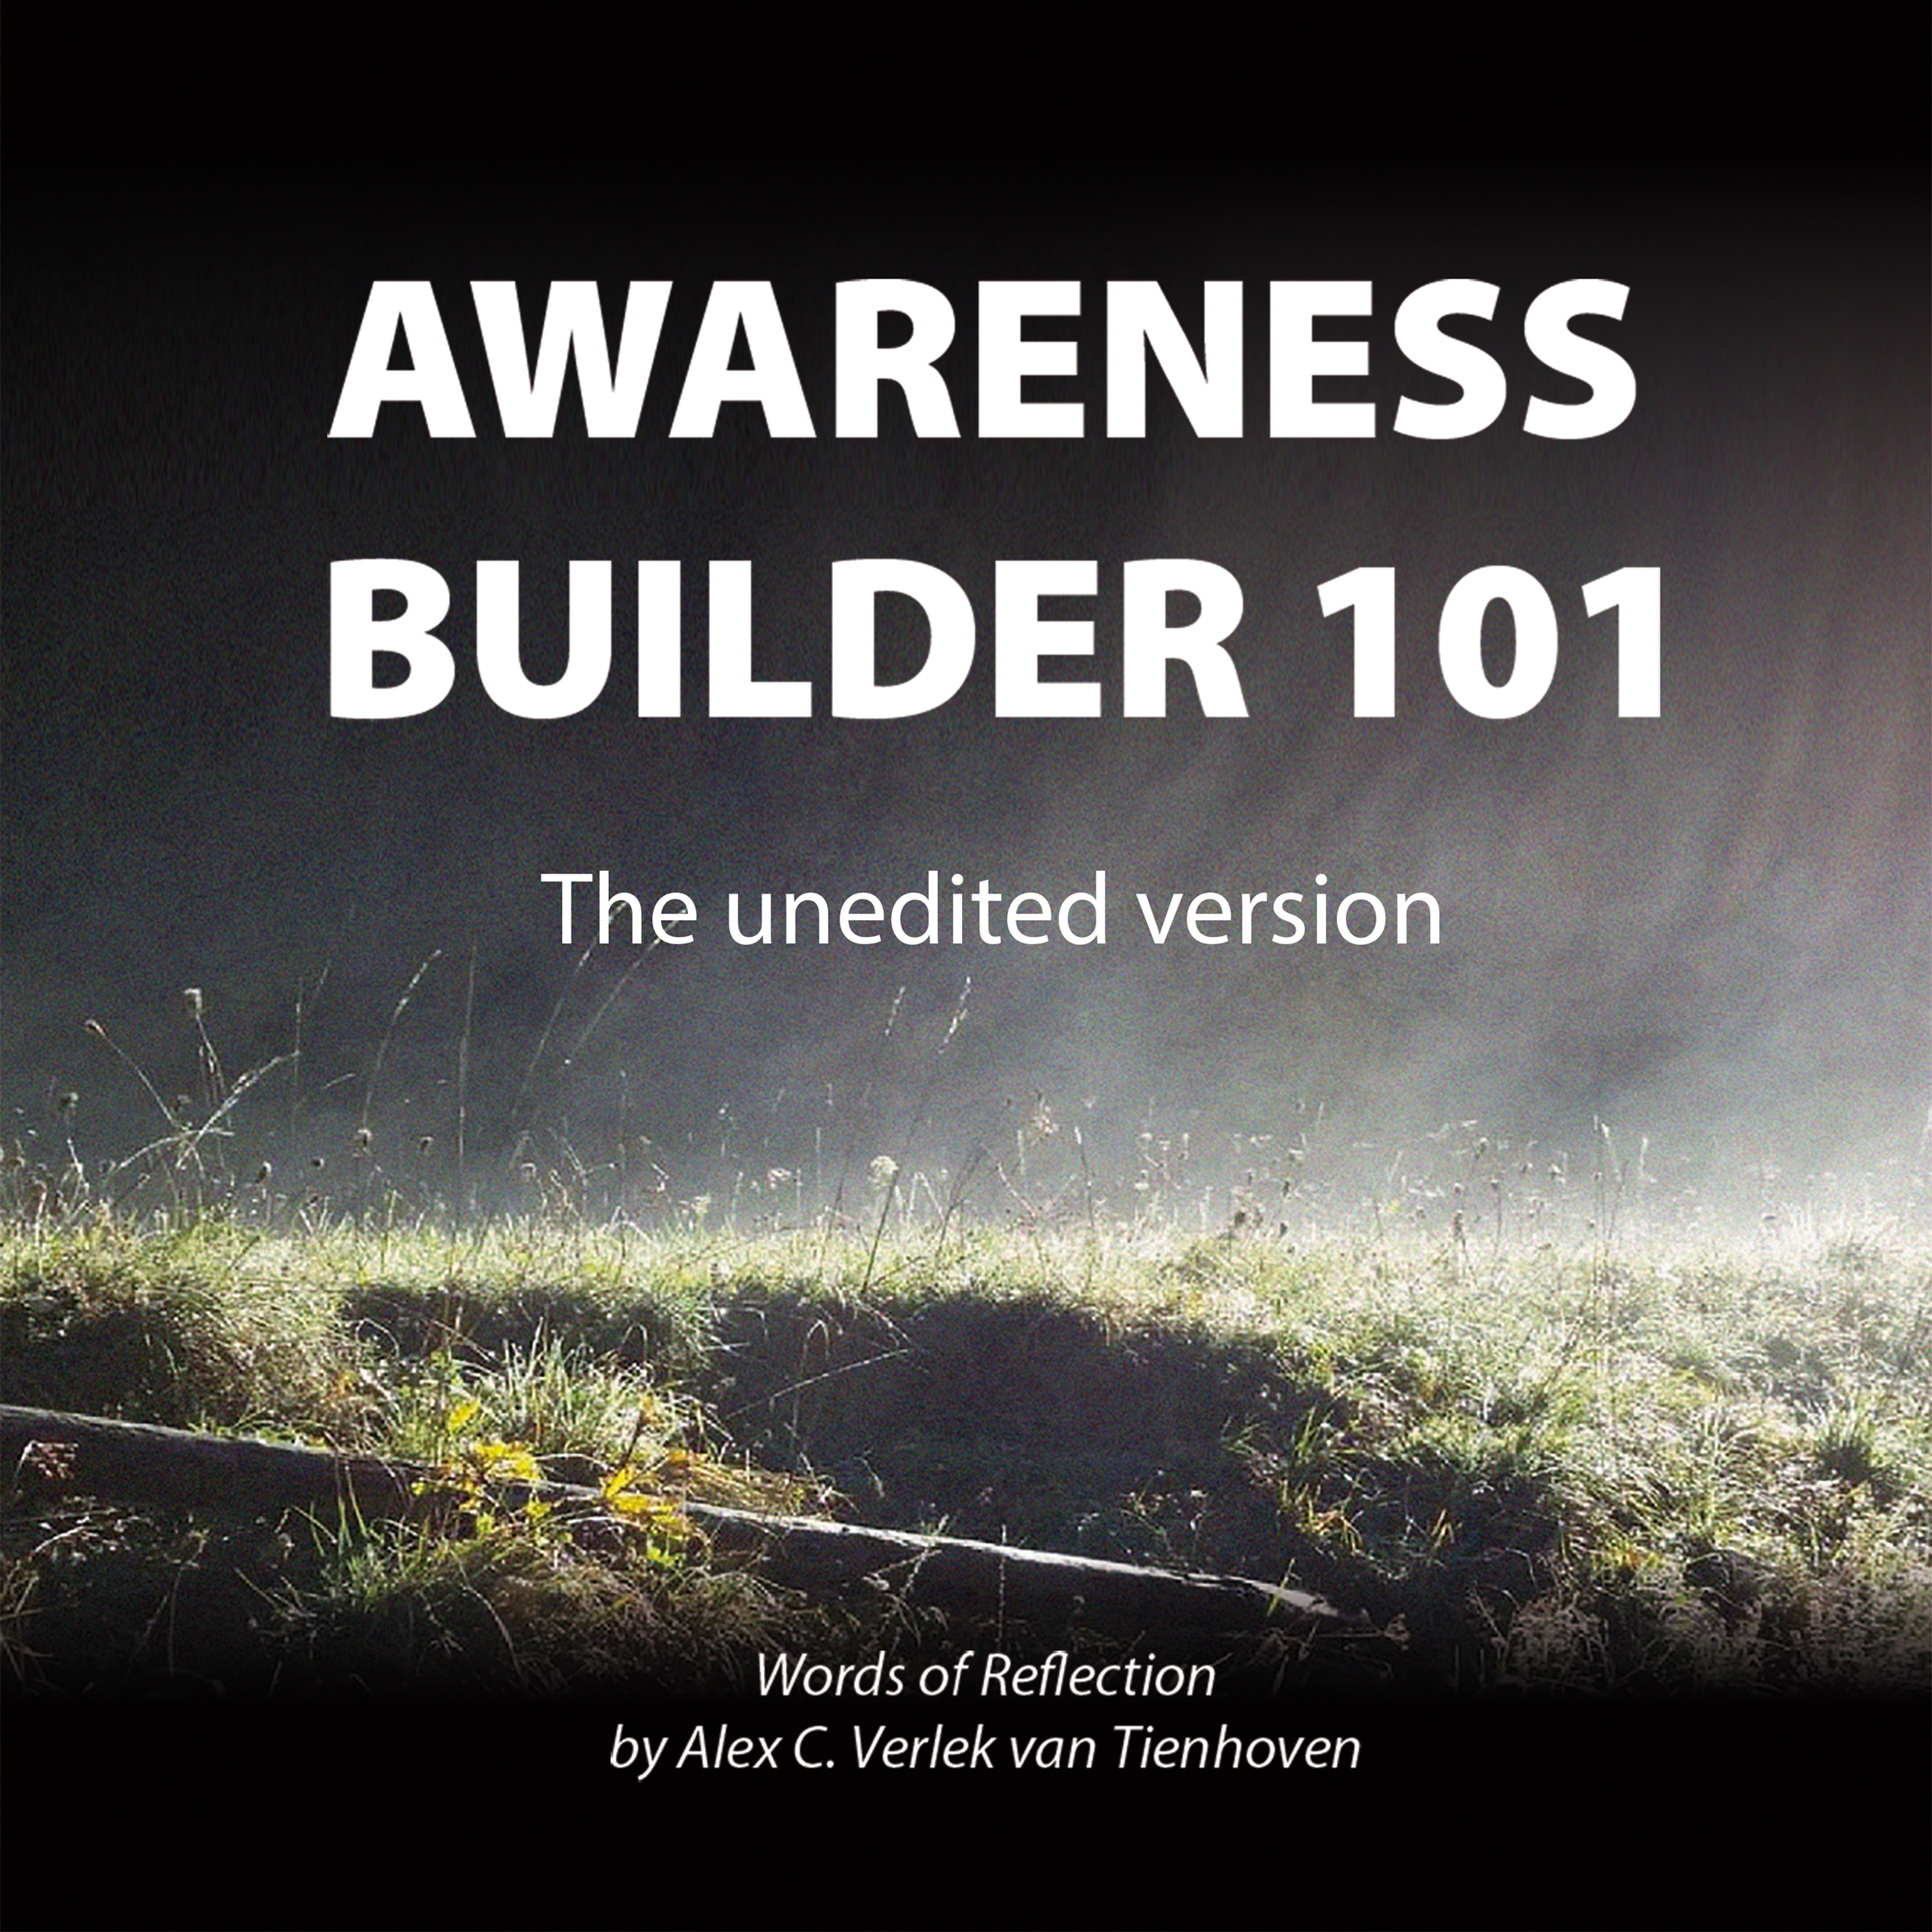 Awareness Builder 101 cover image